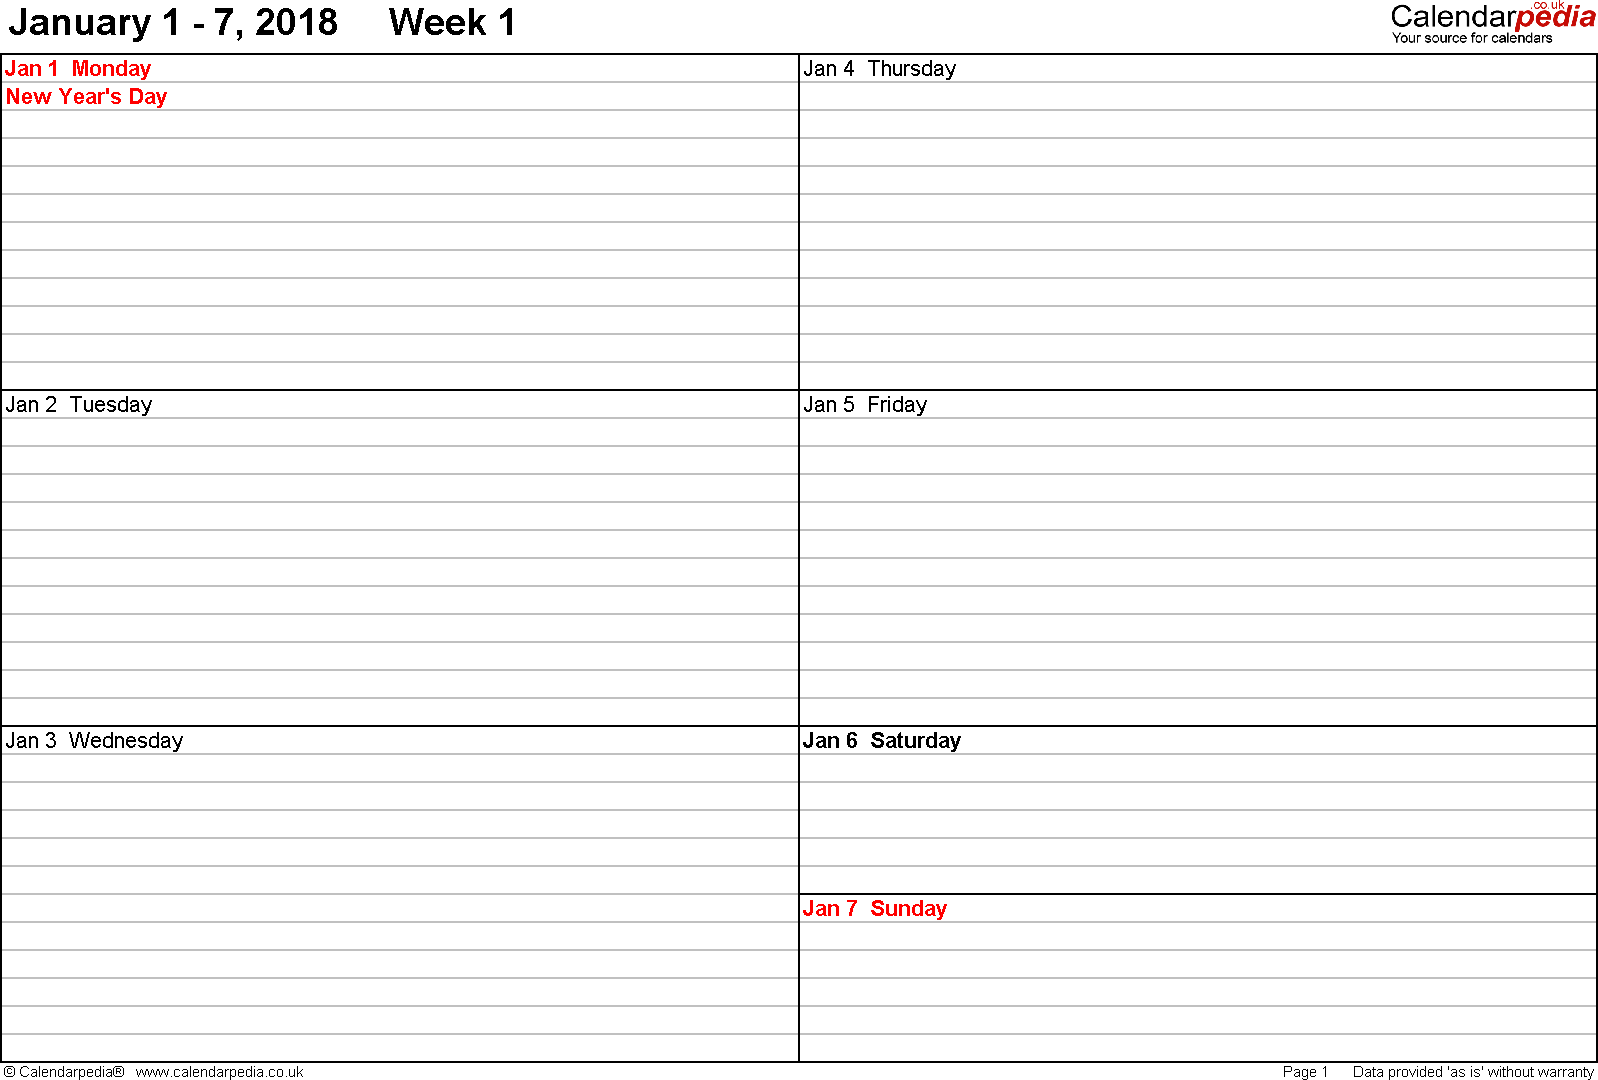 Word Template 5 Weekly Calendar 2018 Landscape Orientation 53 Pages 1